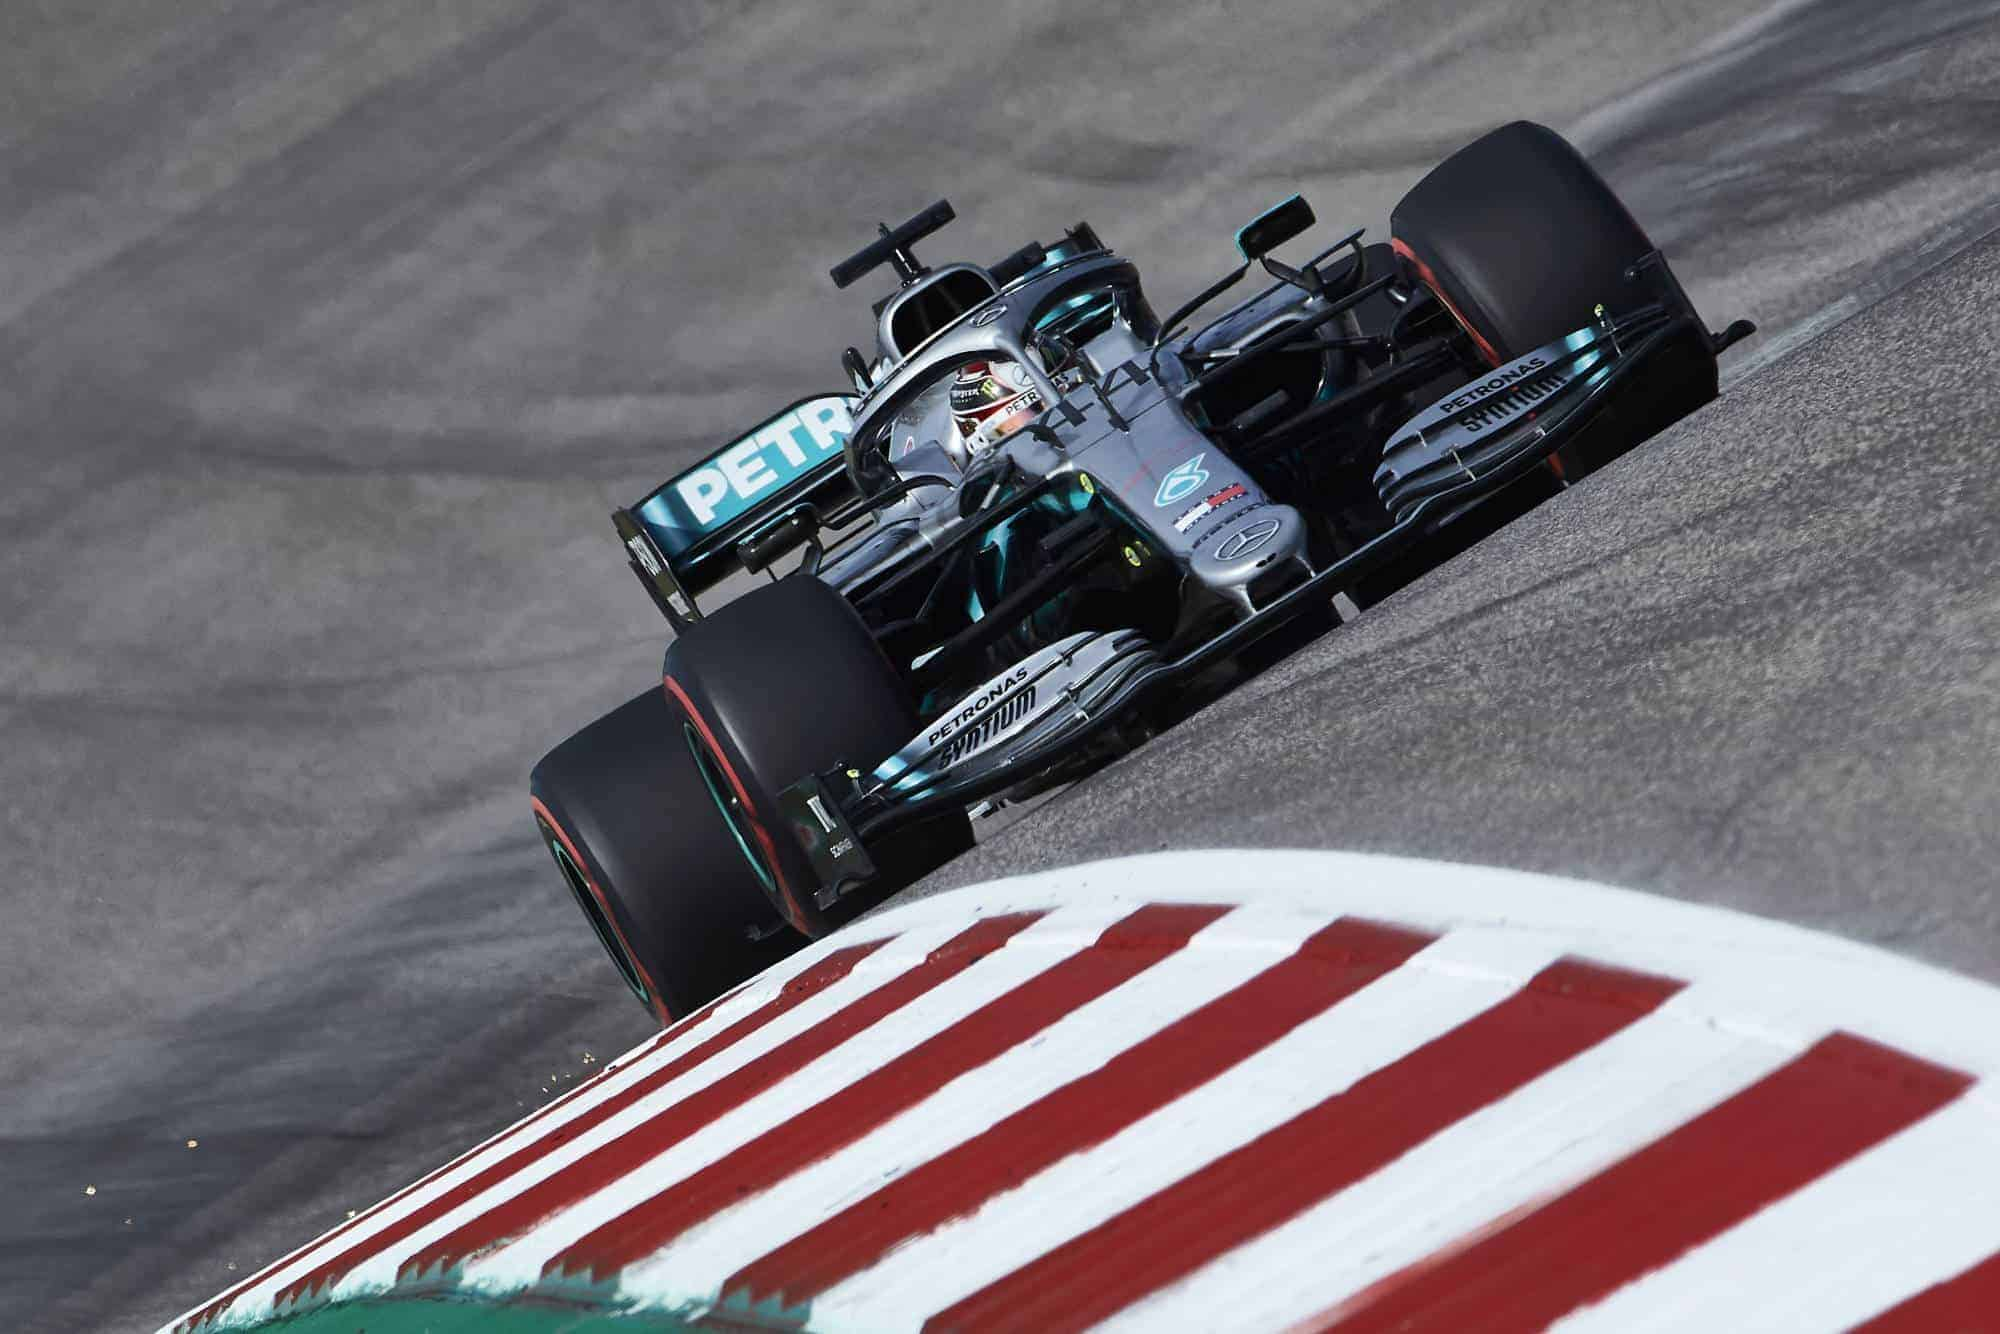 Hamilton Mercedes USA GP Austin F1 2019 soft Pirelli tyres Photo Daimler